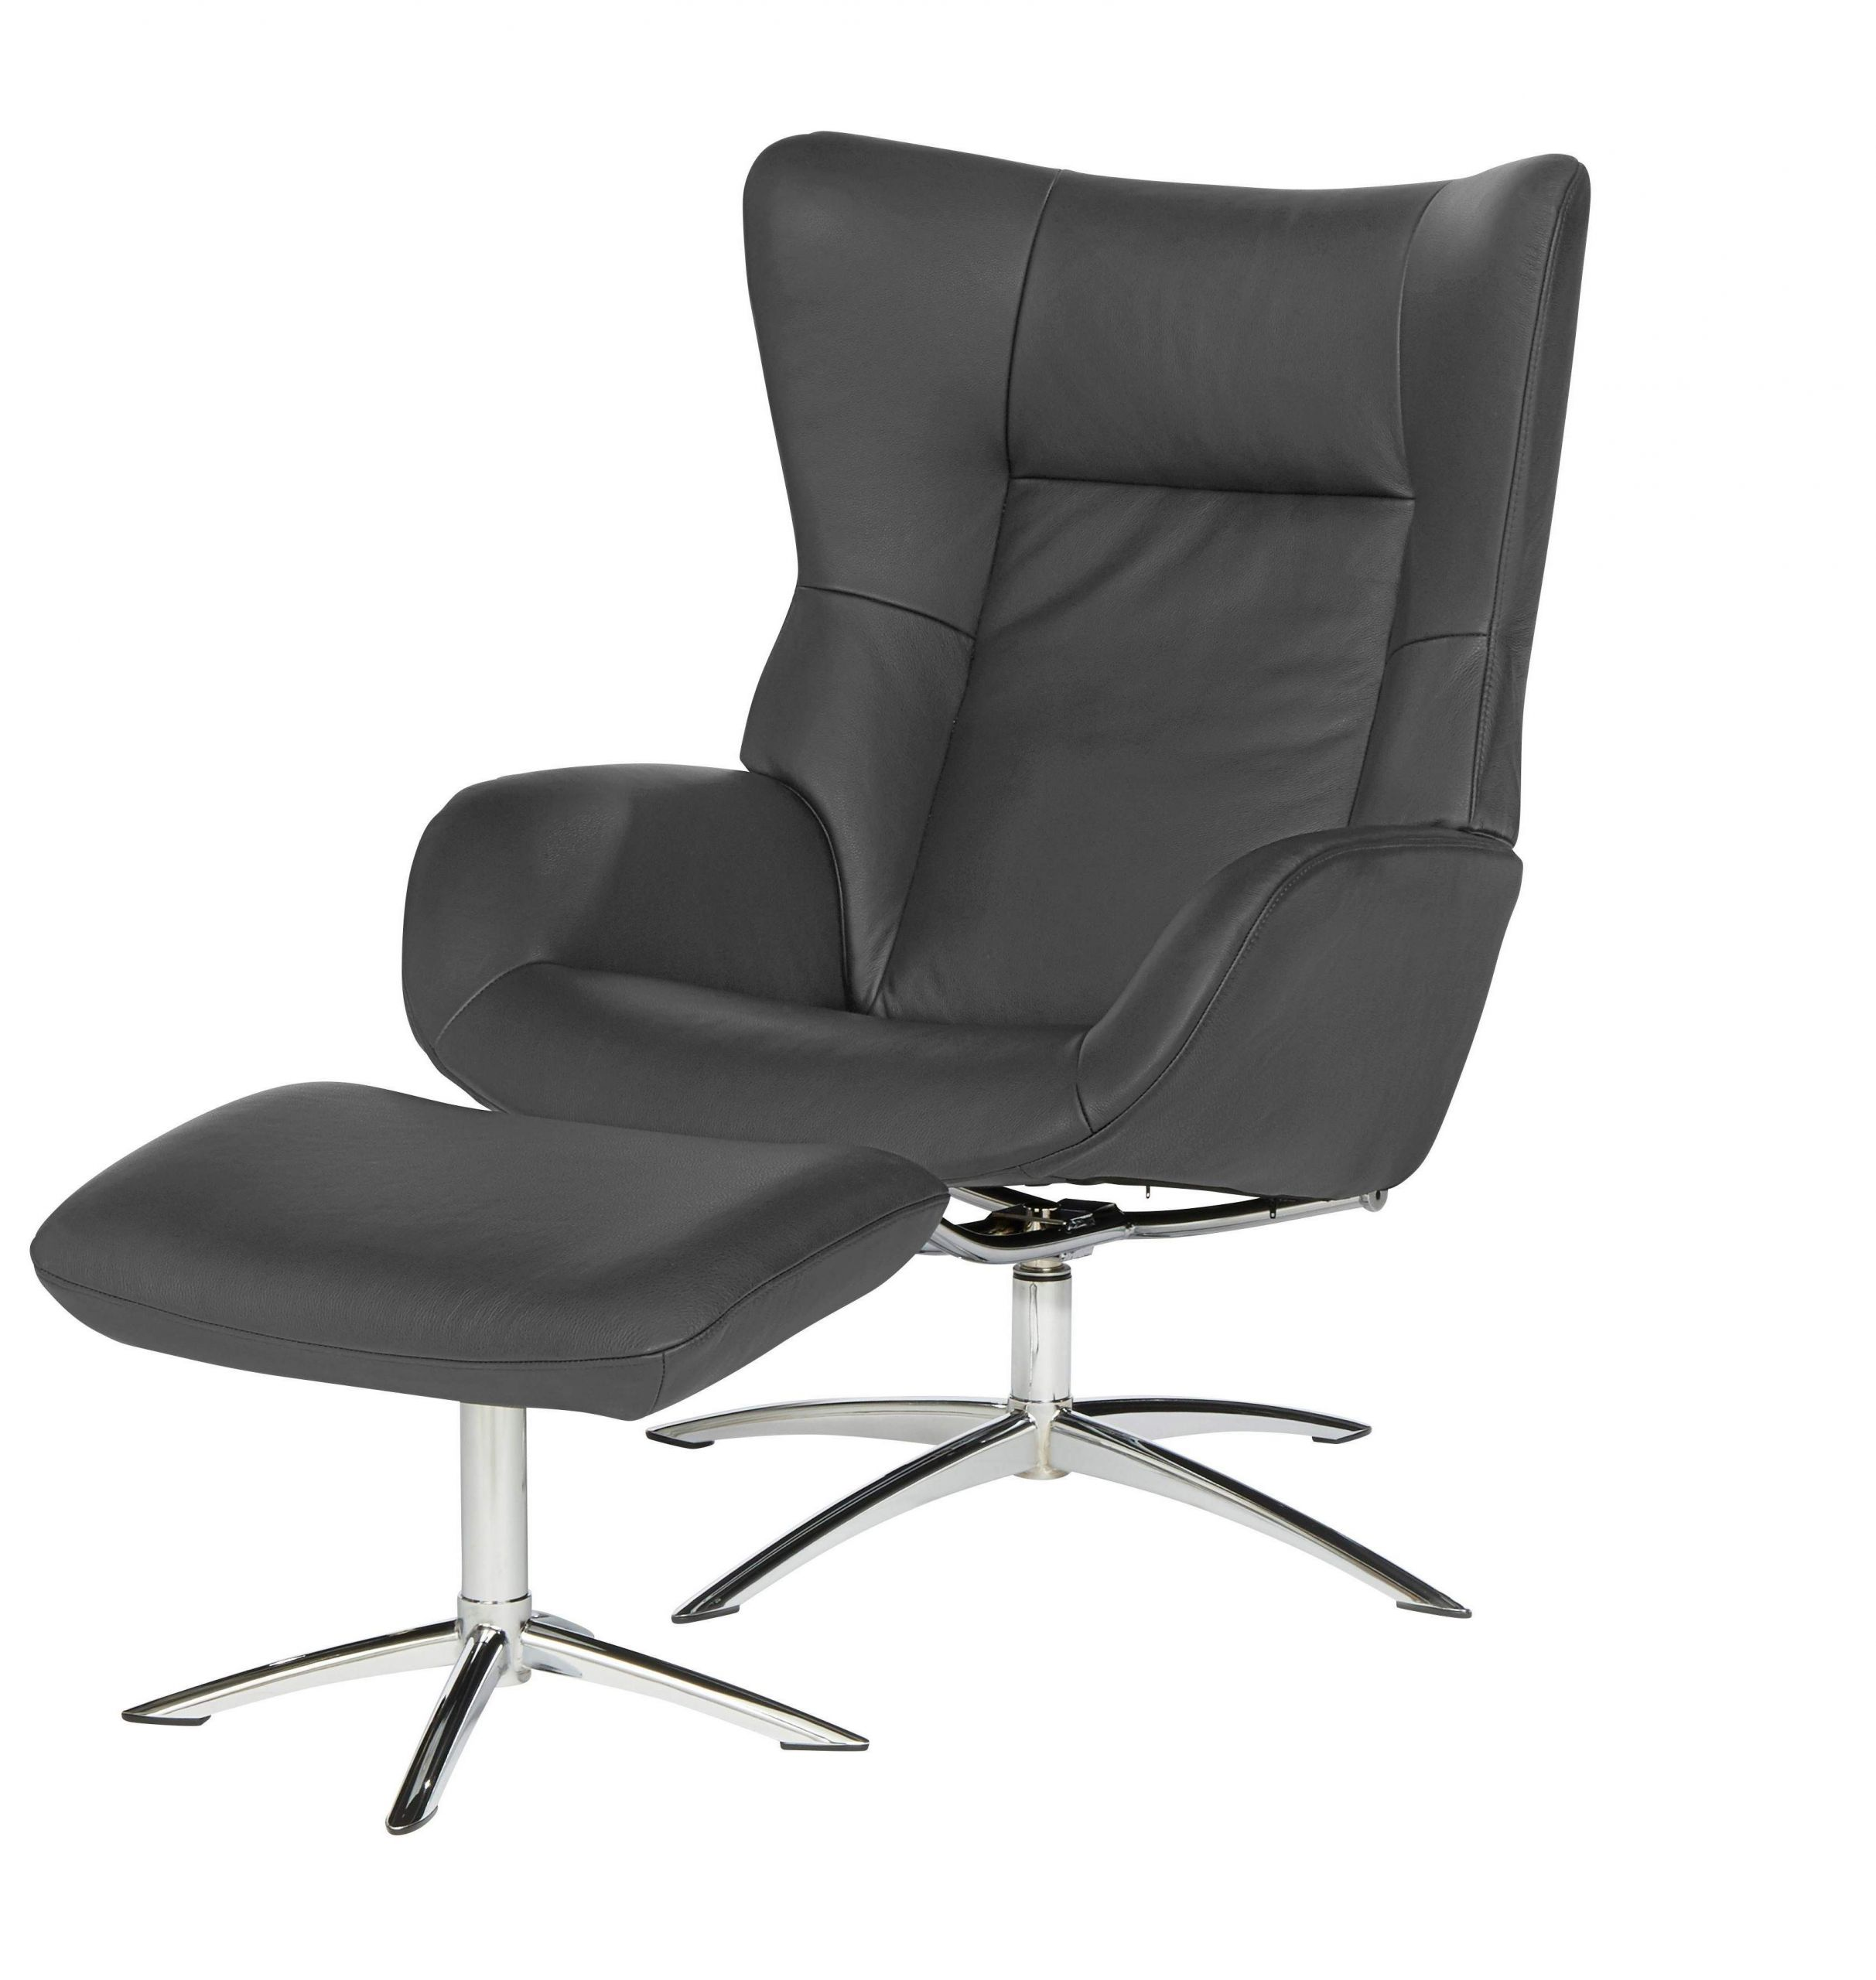 relaxsessel otto 0gdr markwellmoebel relaxsessel online kaufen m bel suchmaschine